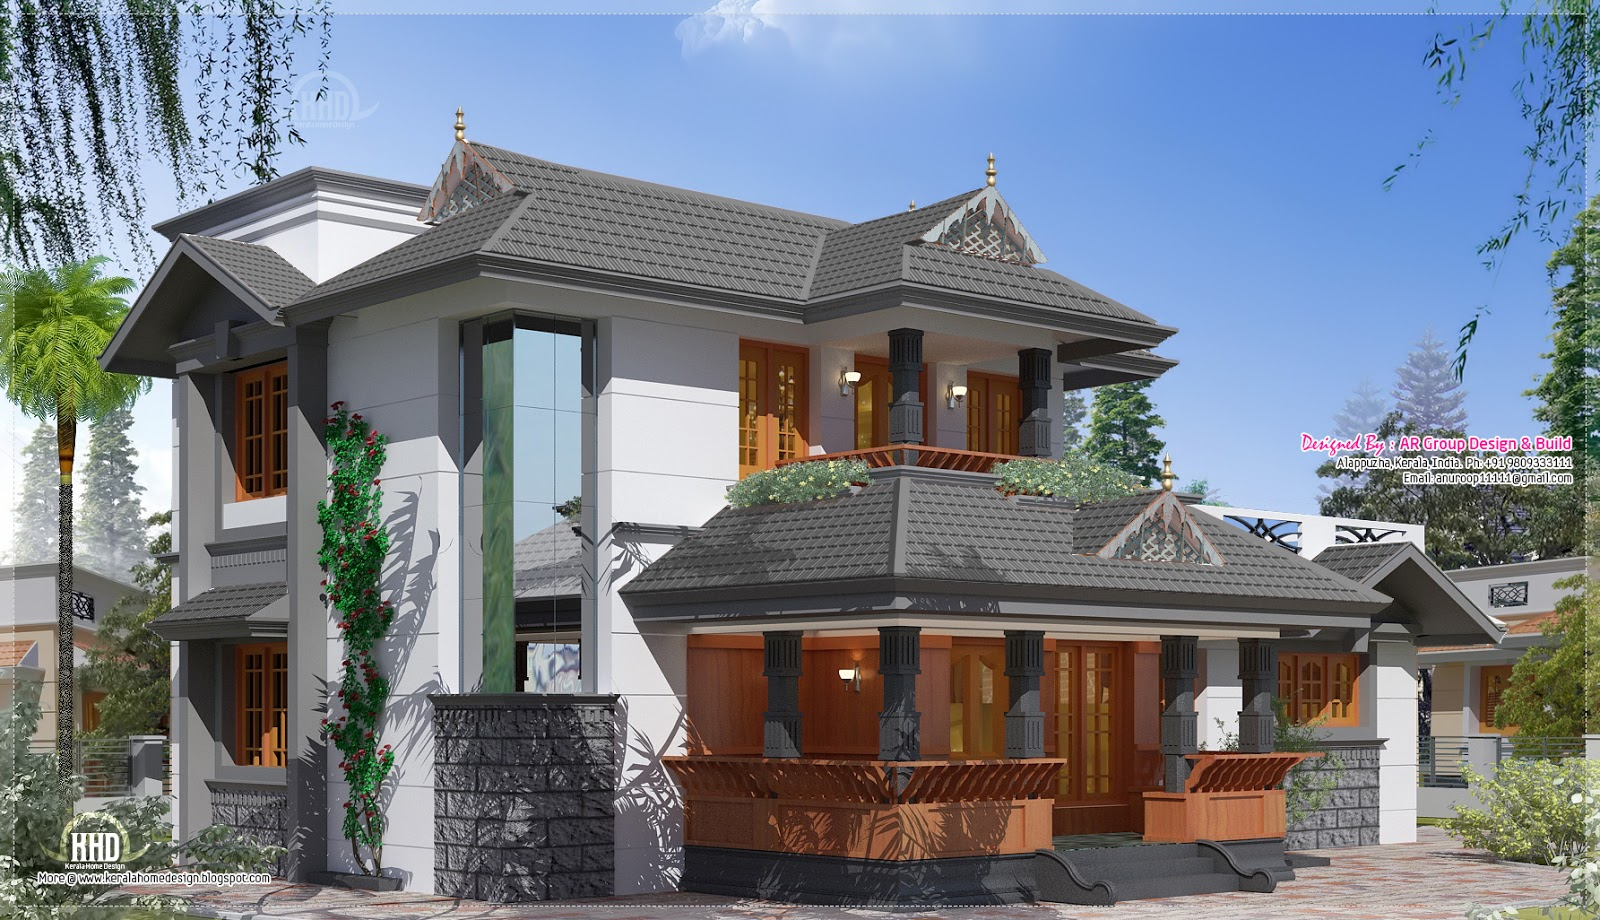 Tradition Mix Kerala Villa In 1950 House Design